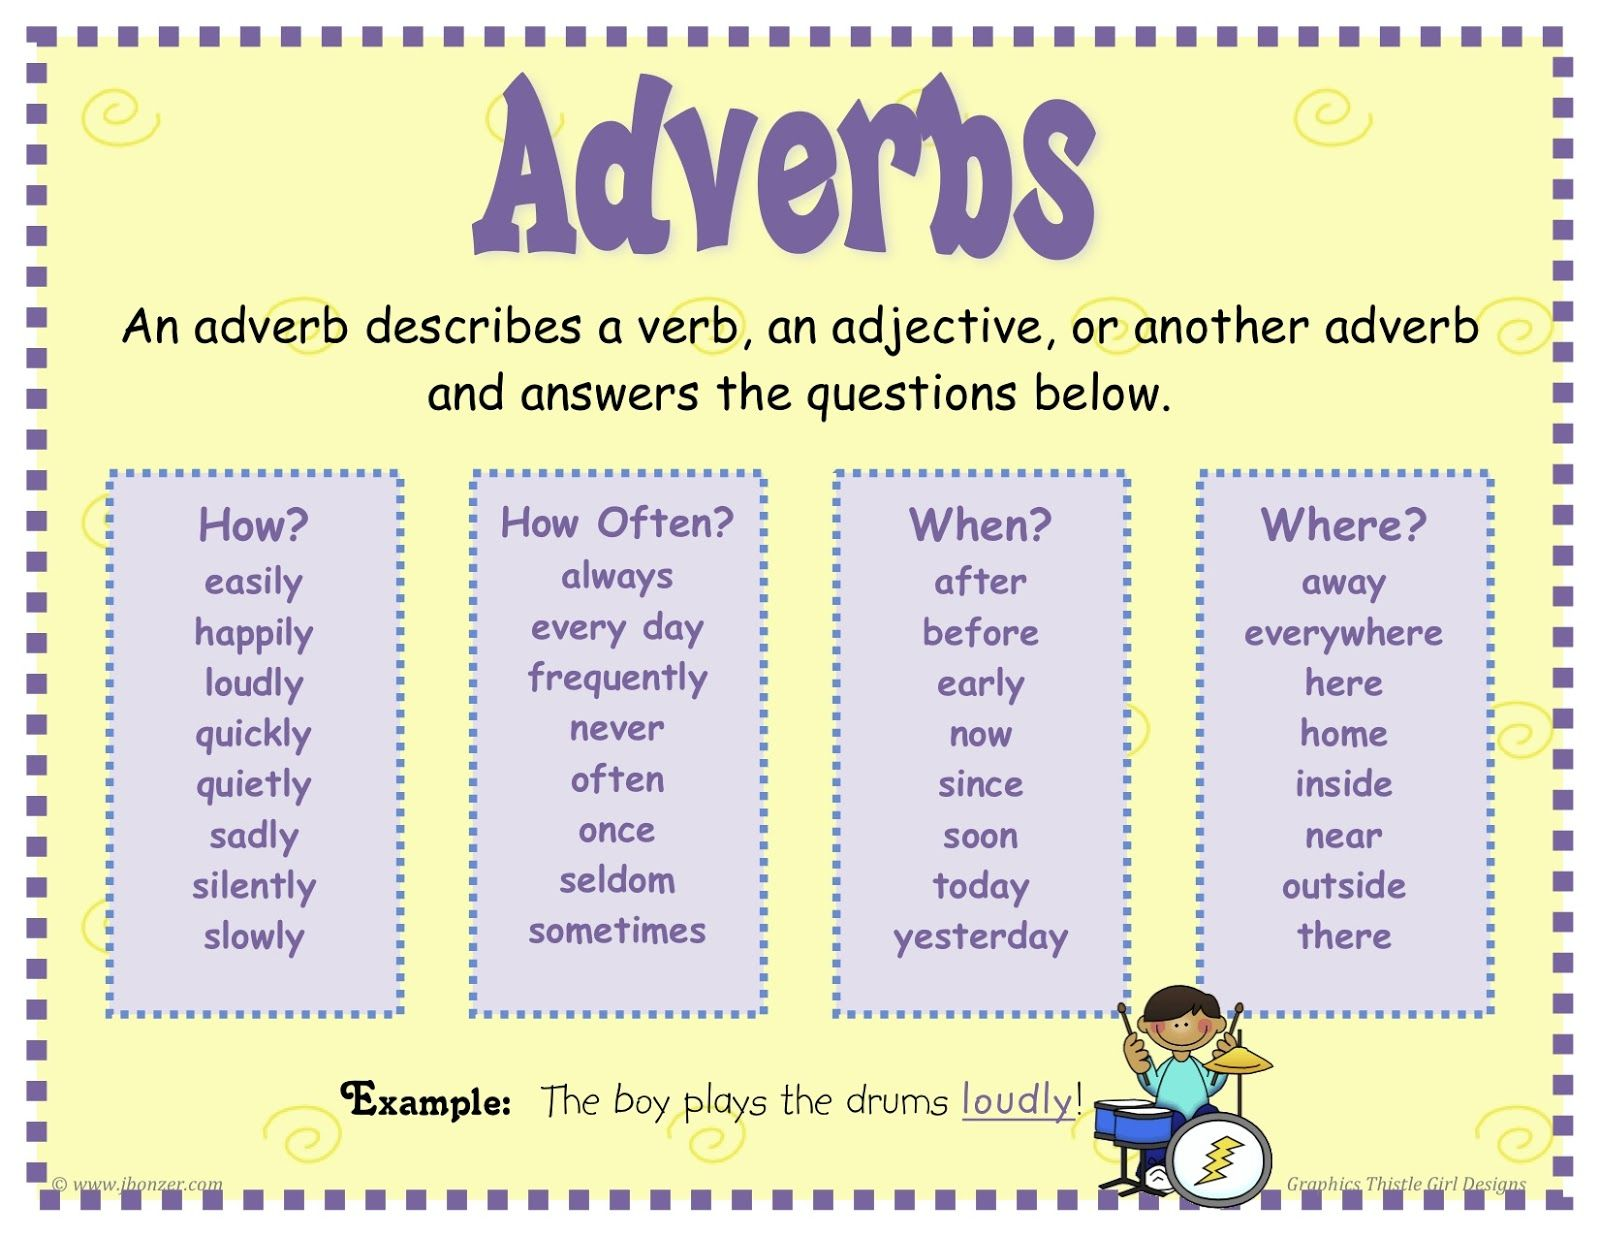 Adverb Definition Uses And Exercises Tutorial De Idiomas